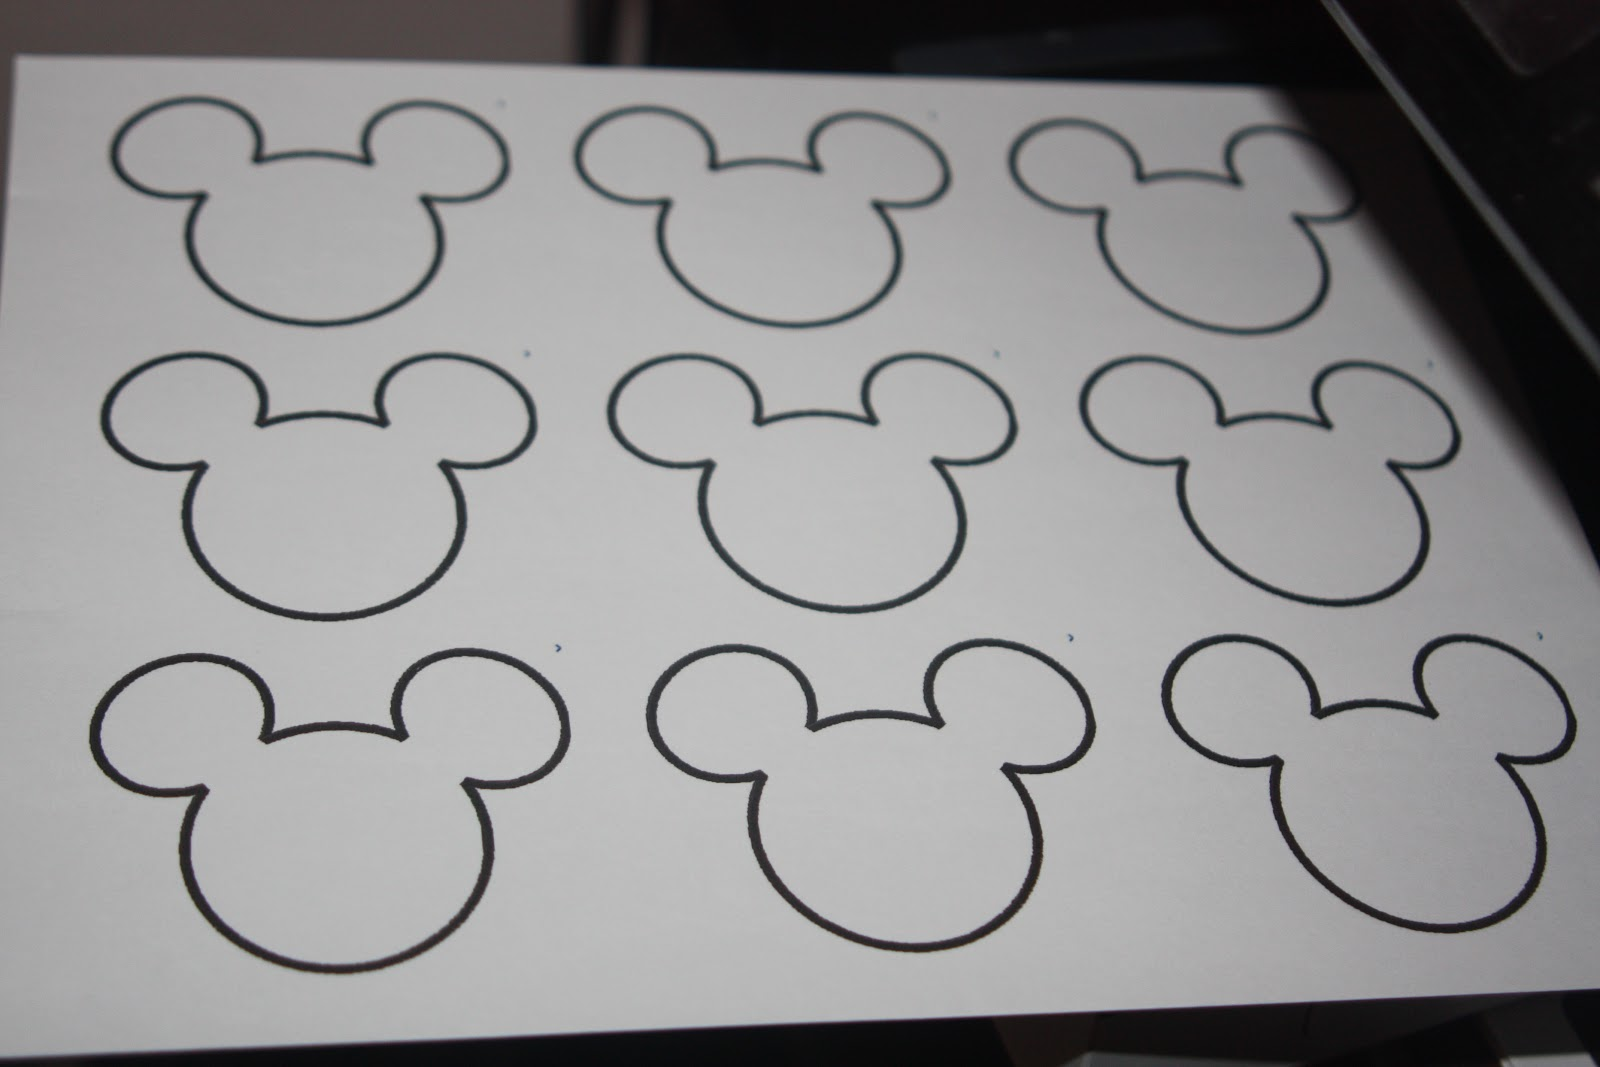 Printed out an outline of mickey onto a label sheet with an adhesive